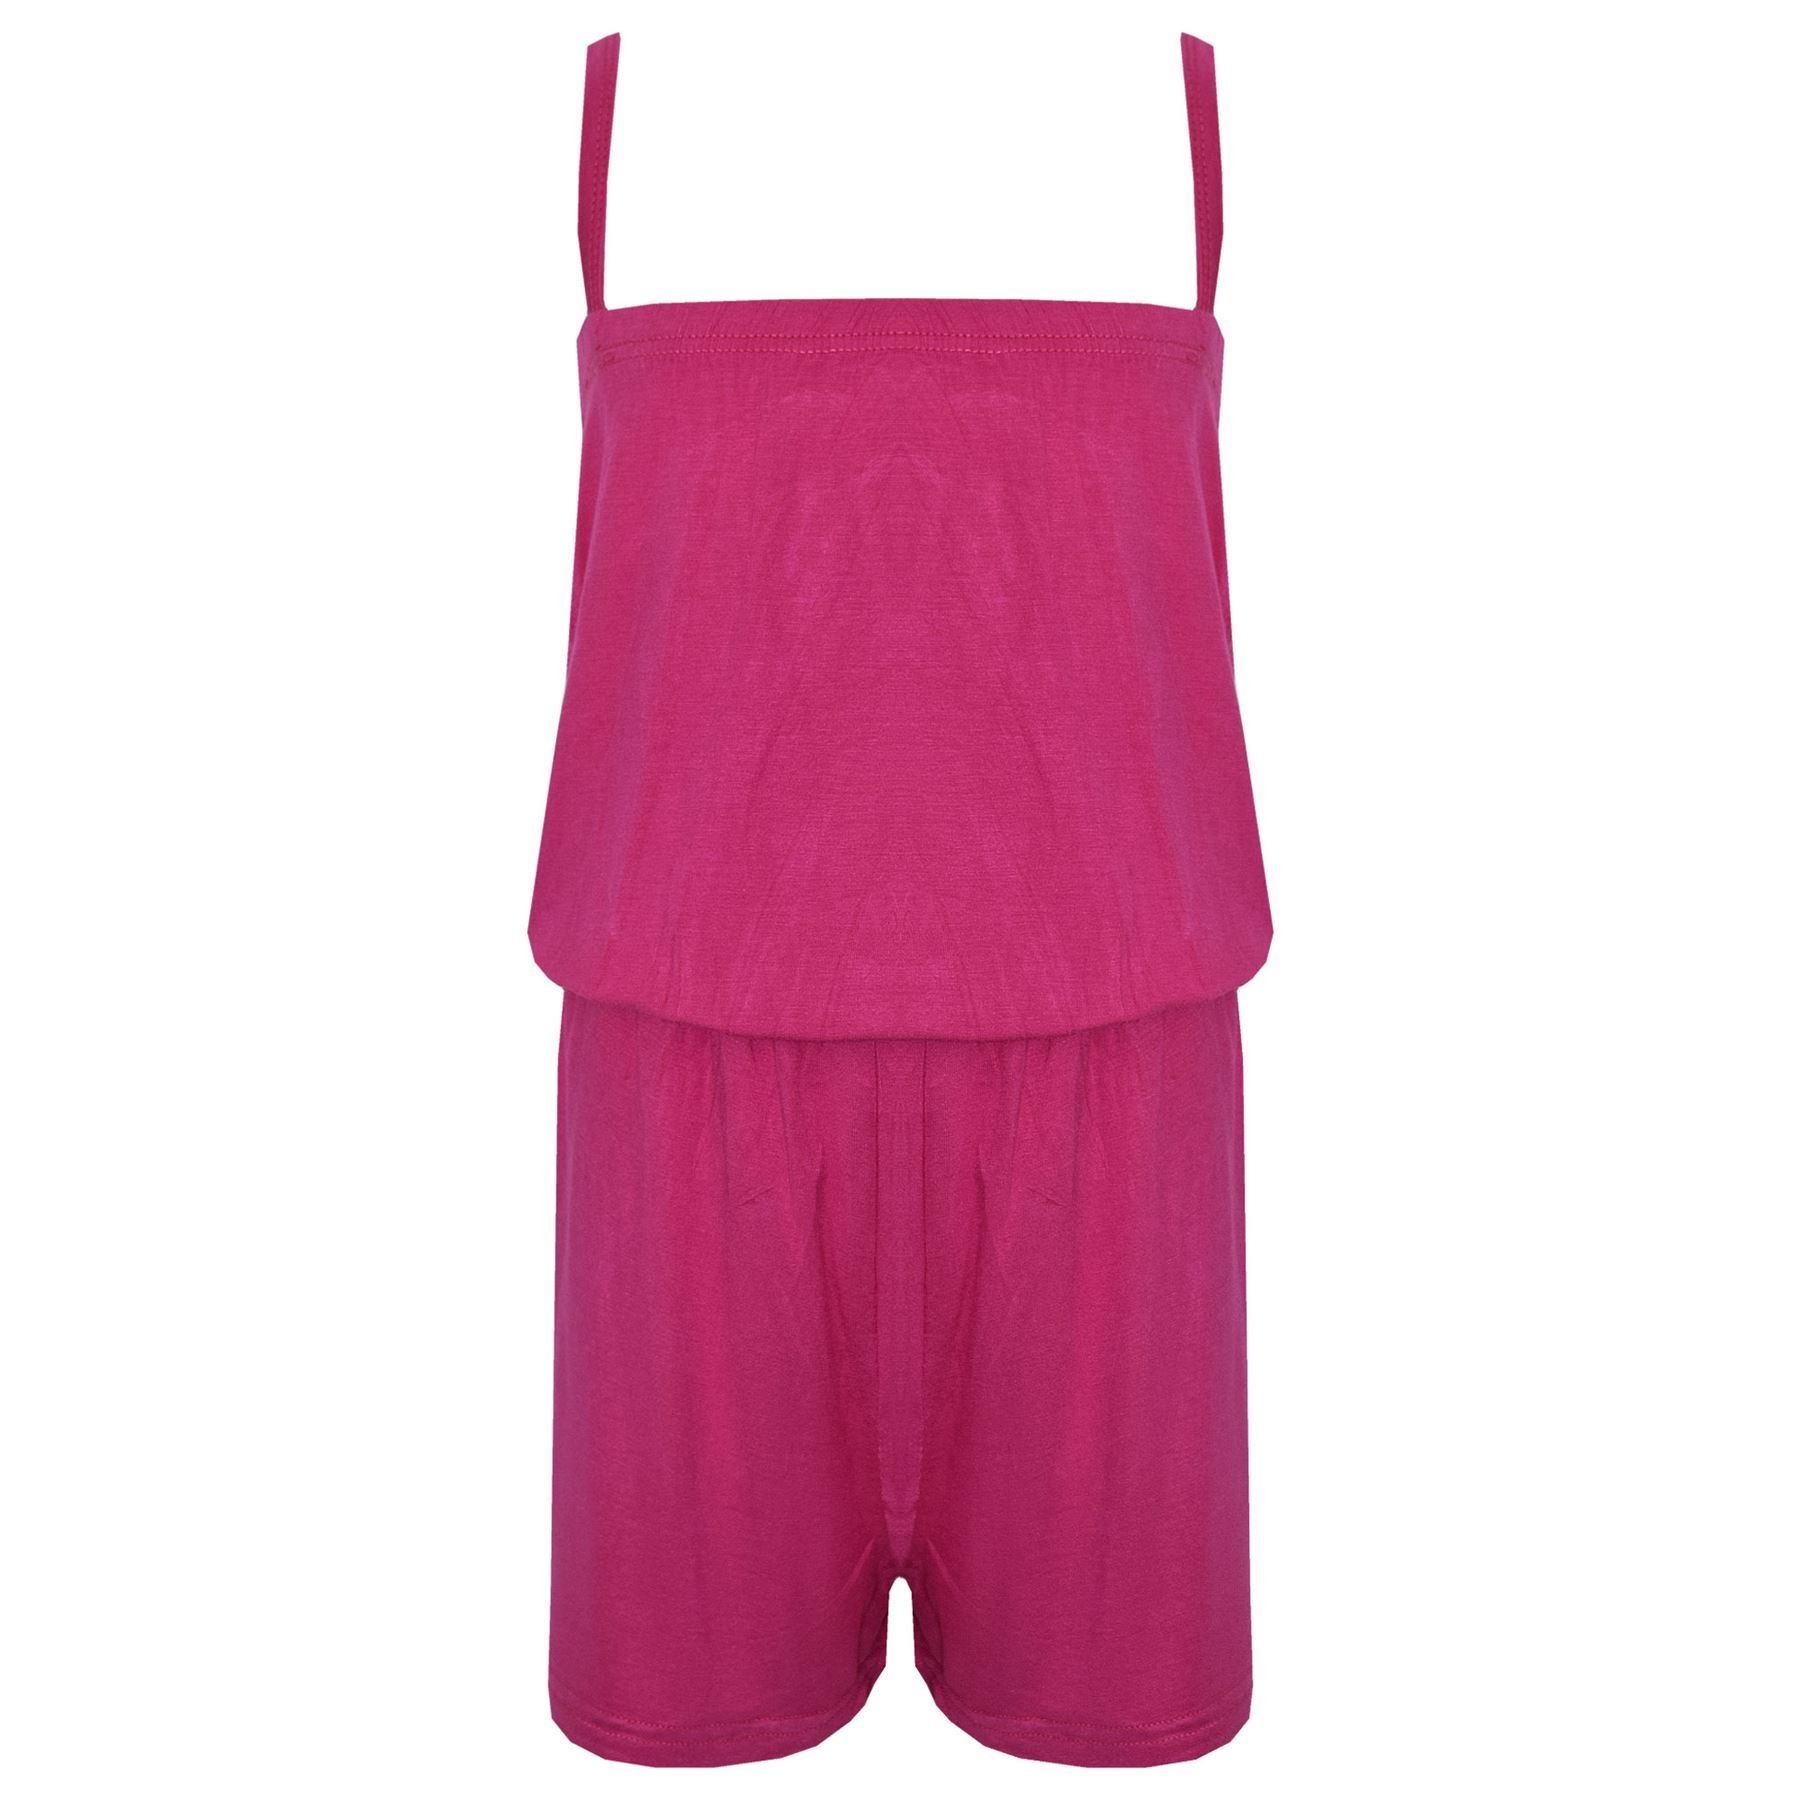 Kids Girls Plain Pink Color Playsuit Trendy All in One Jumpsuit New Age 5-13 Yr